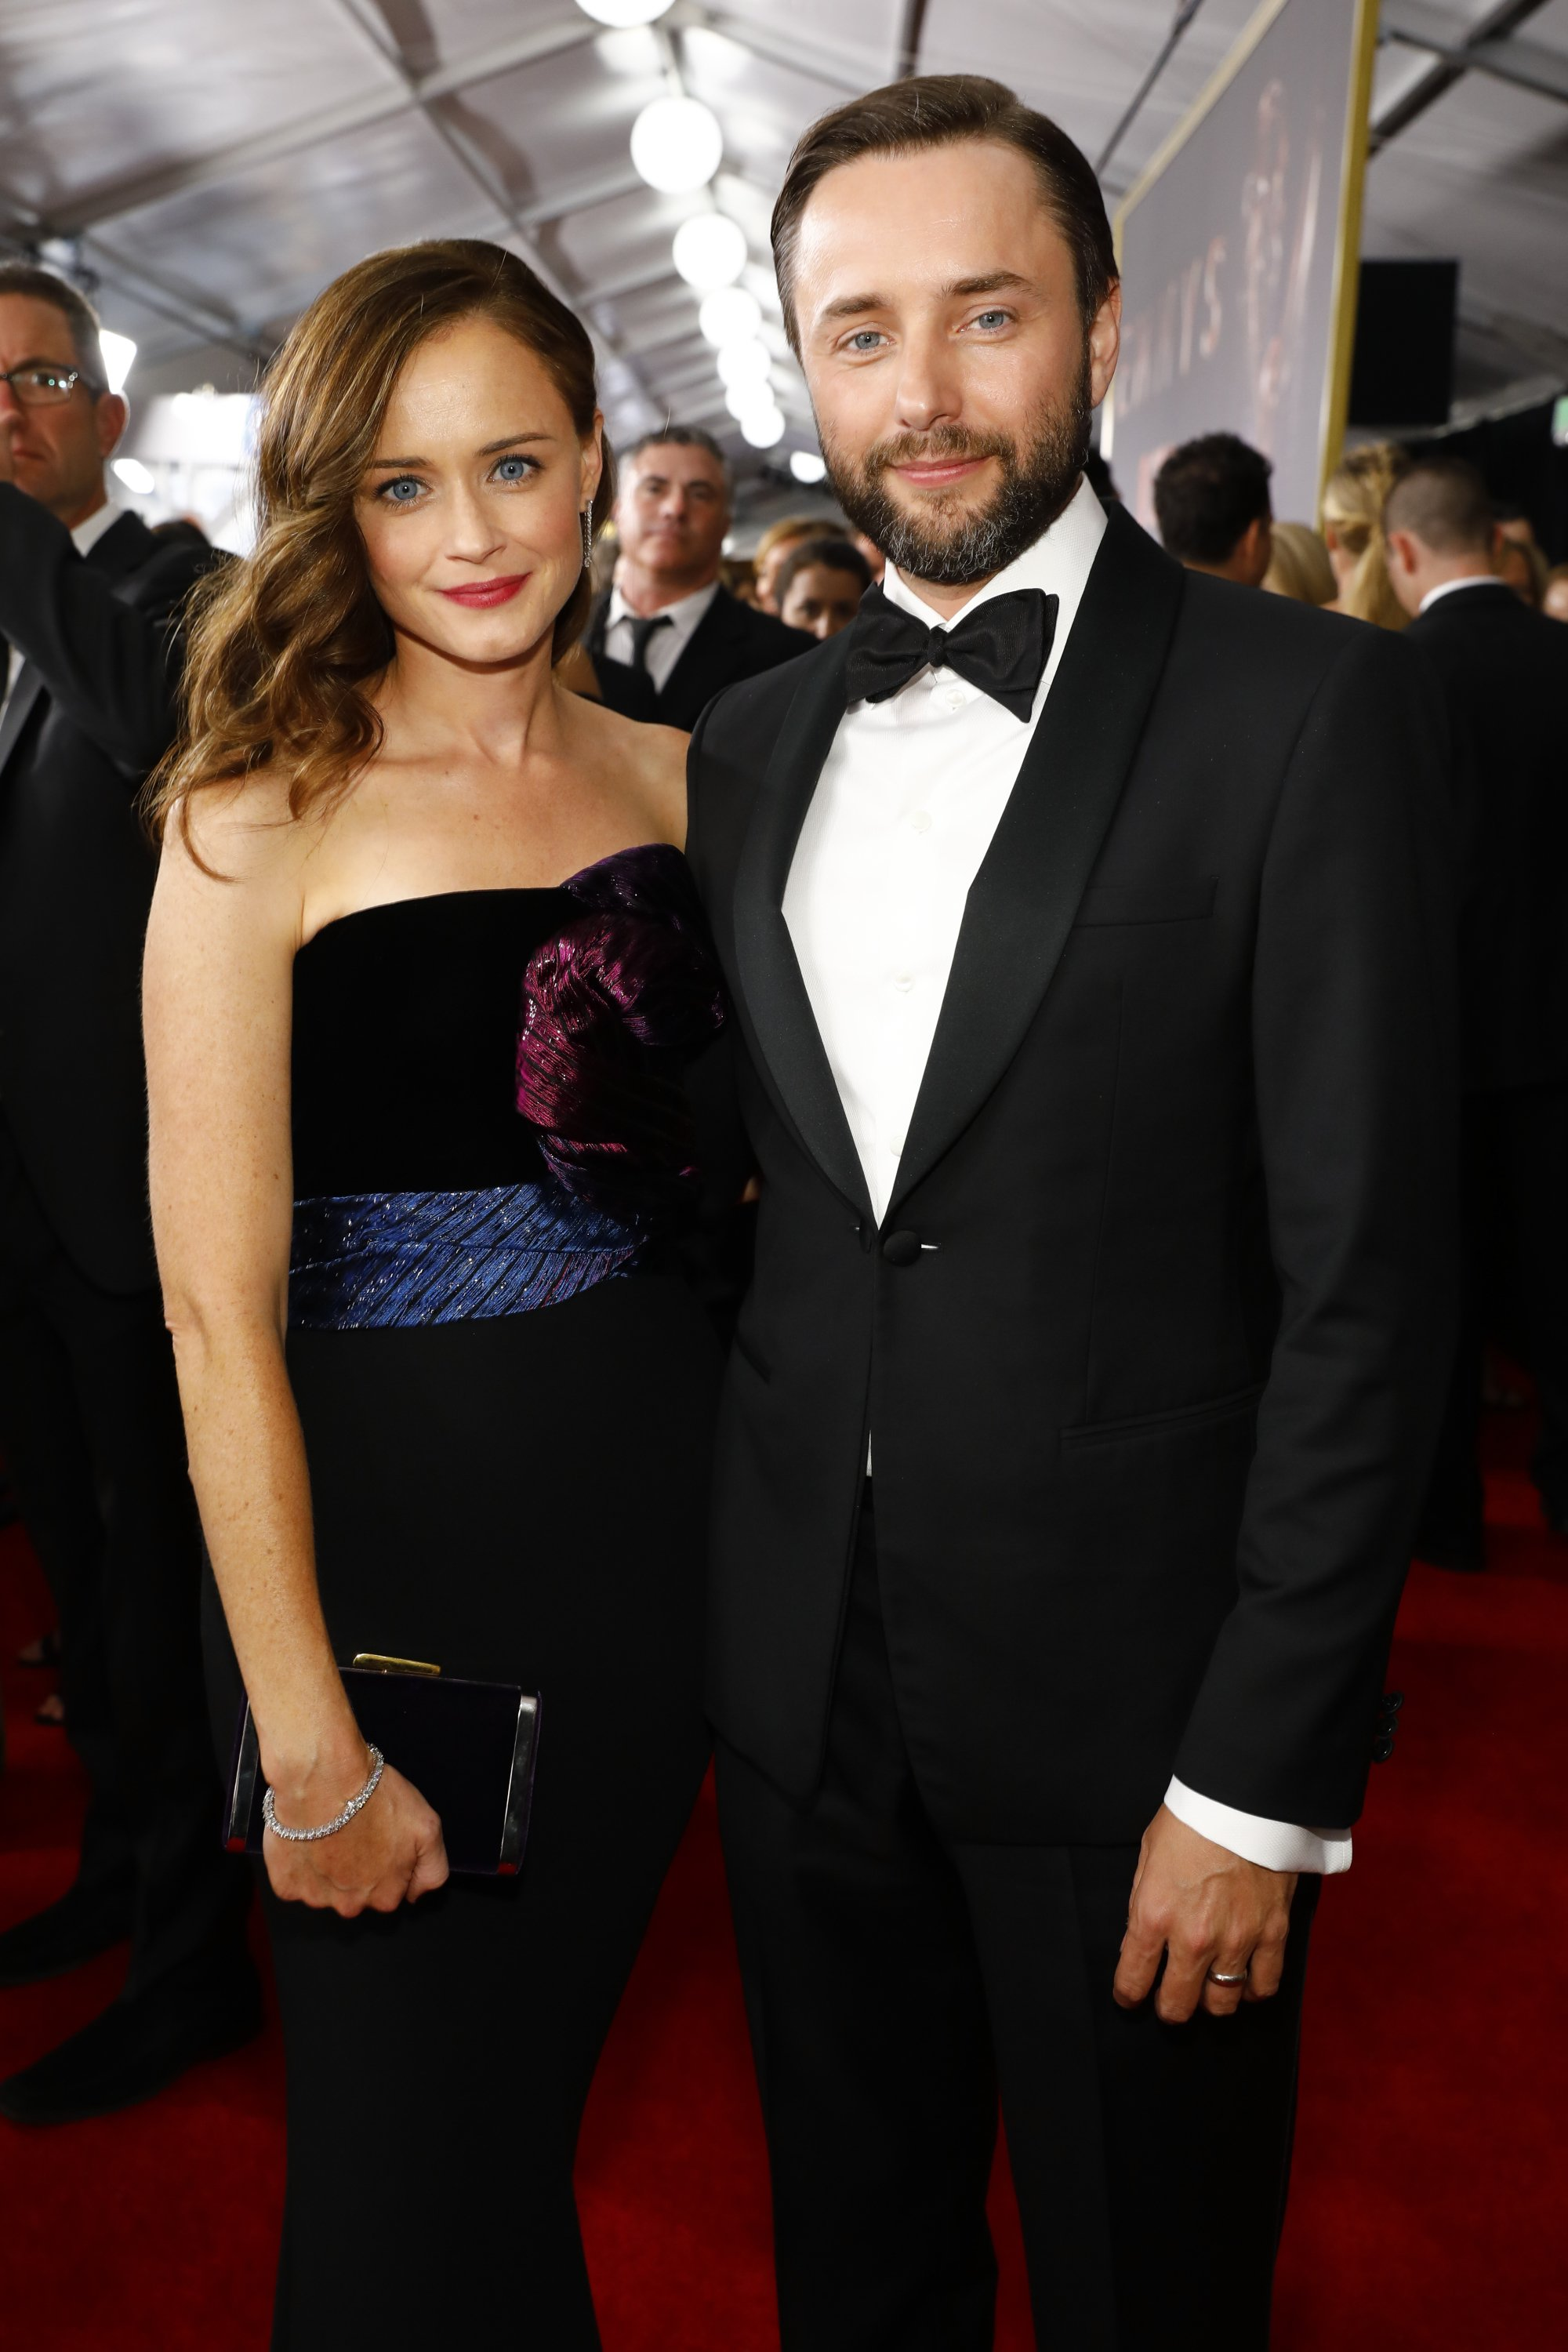 Alexis Bledel and Vincent Kartheiser at the 69th Primetime Emmy Awards | Photo: Getty Images